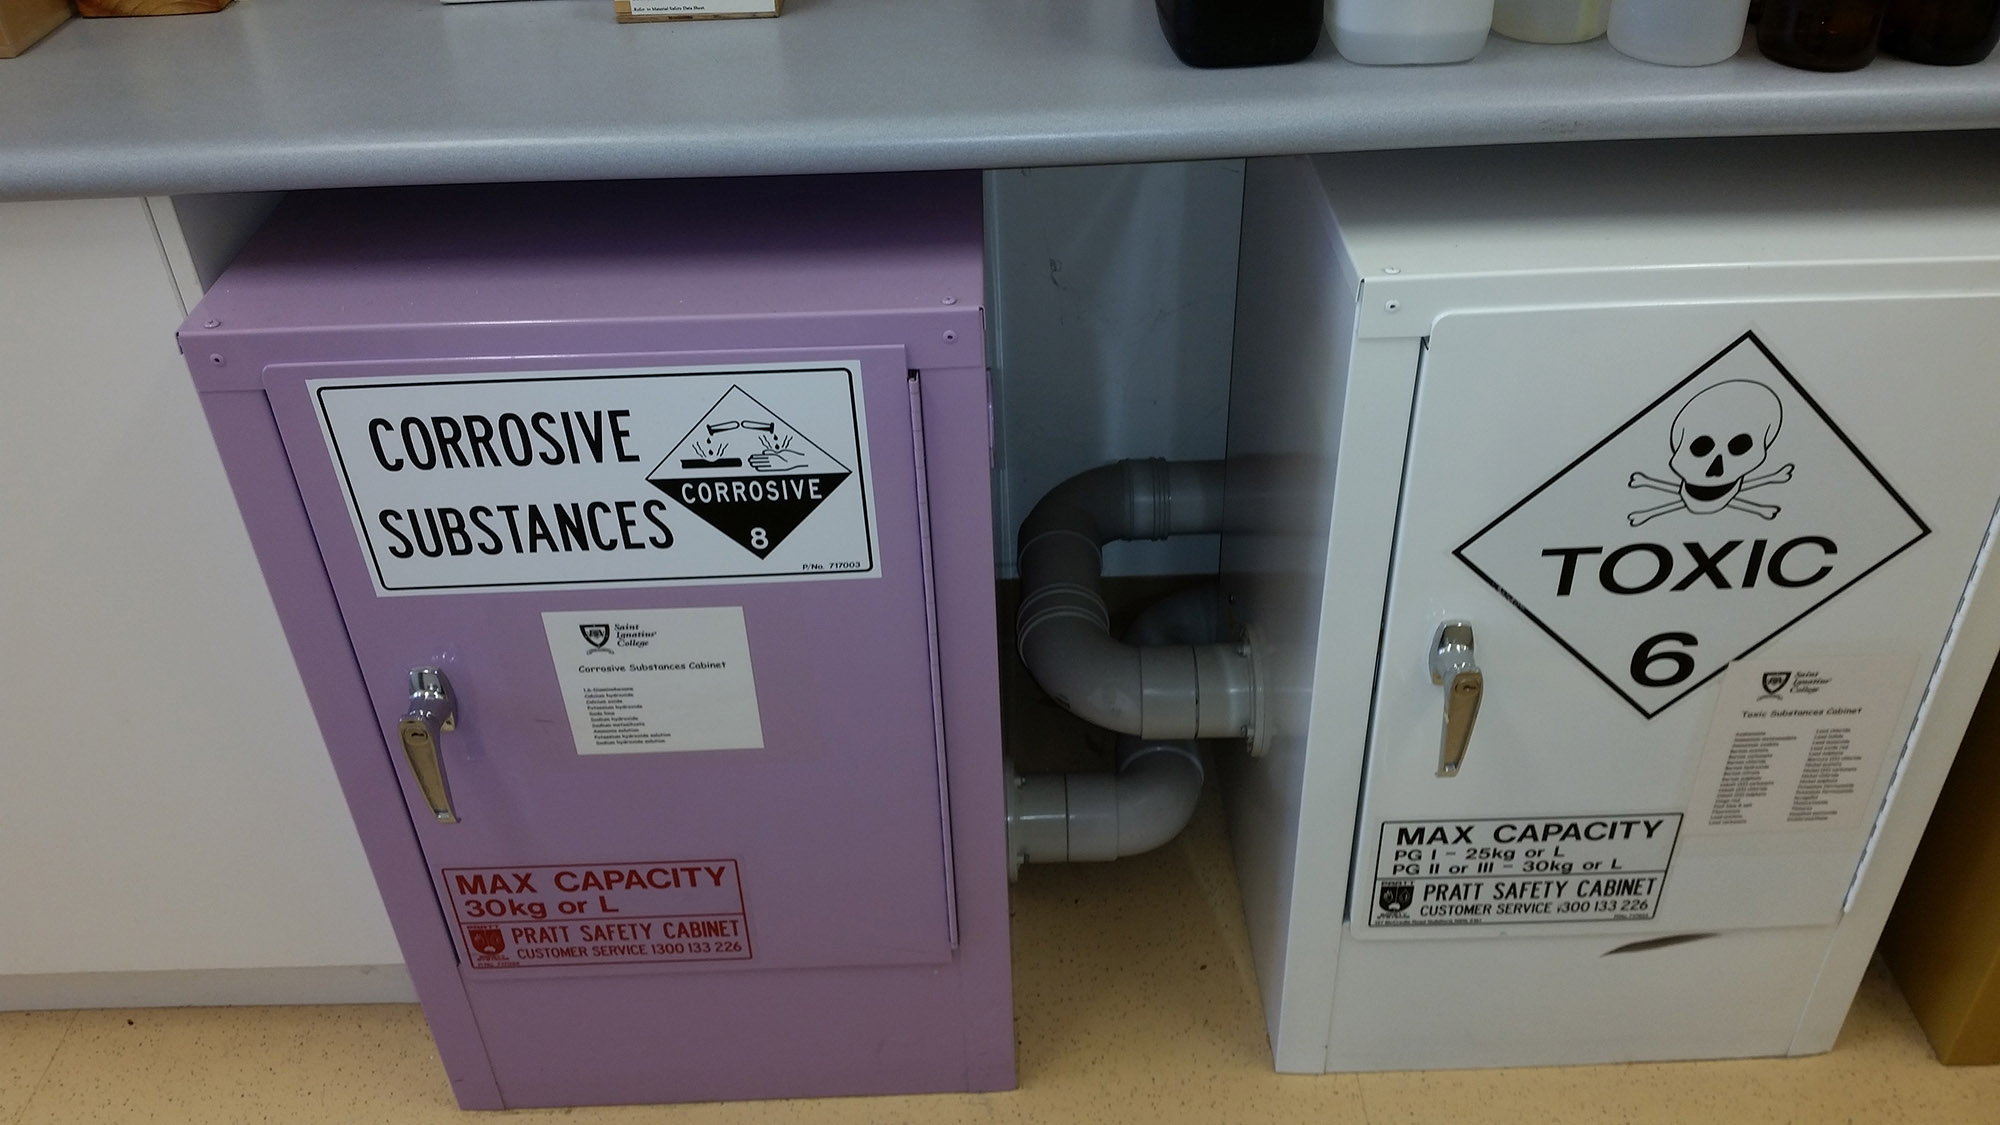 Corrosive and toxic substances cabinets